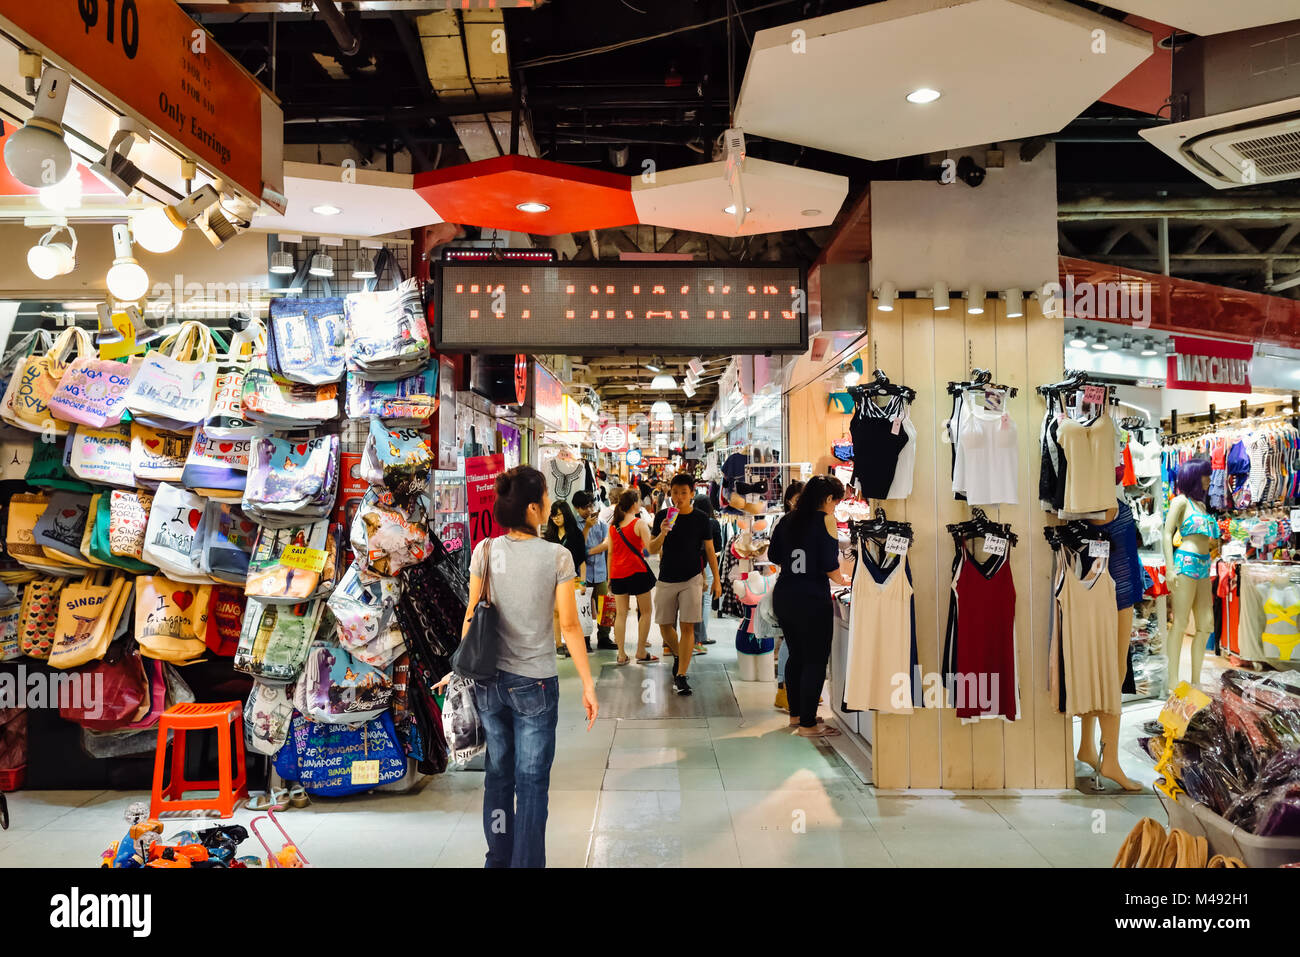 Singapore Bugis Street. A building with 3 storeys of shops selling affordable clothes, accessories and novelty gifts. - Stock Image